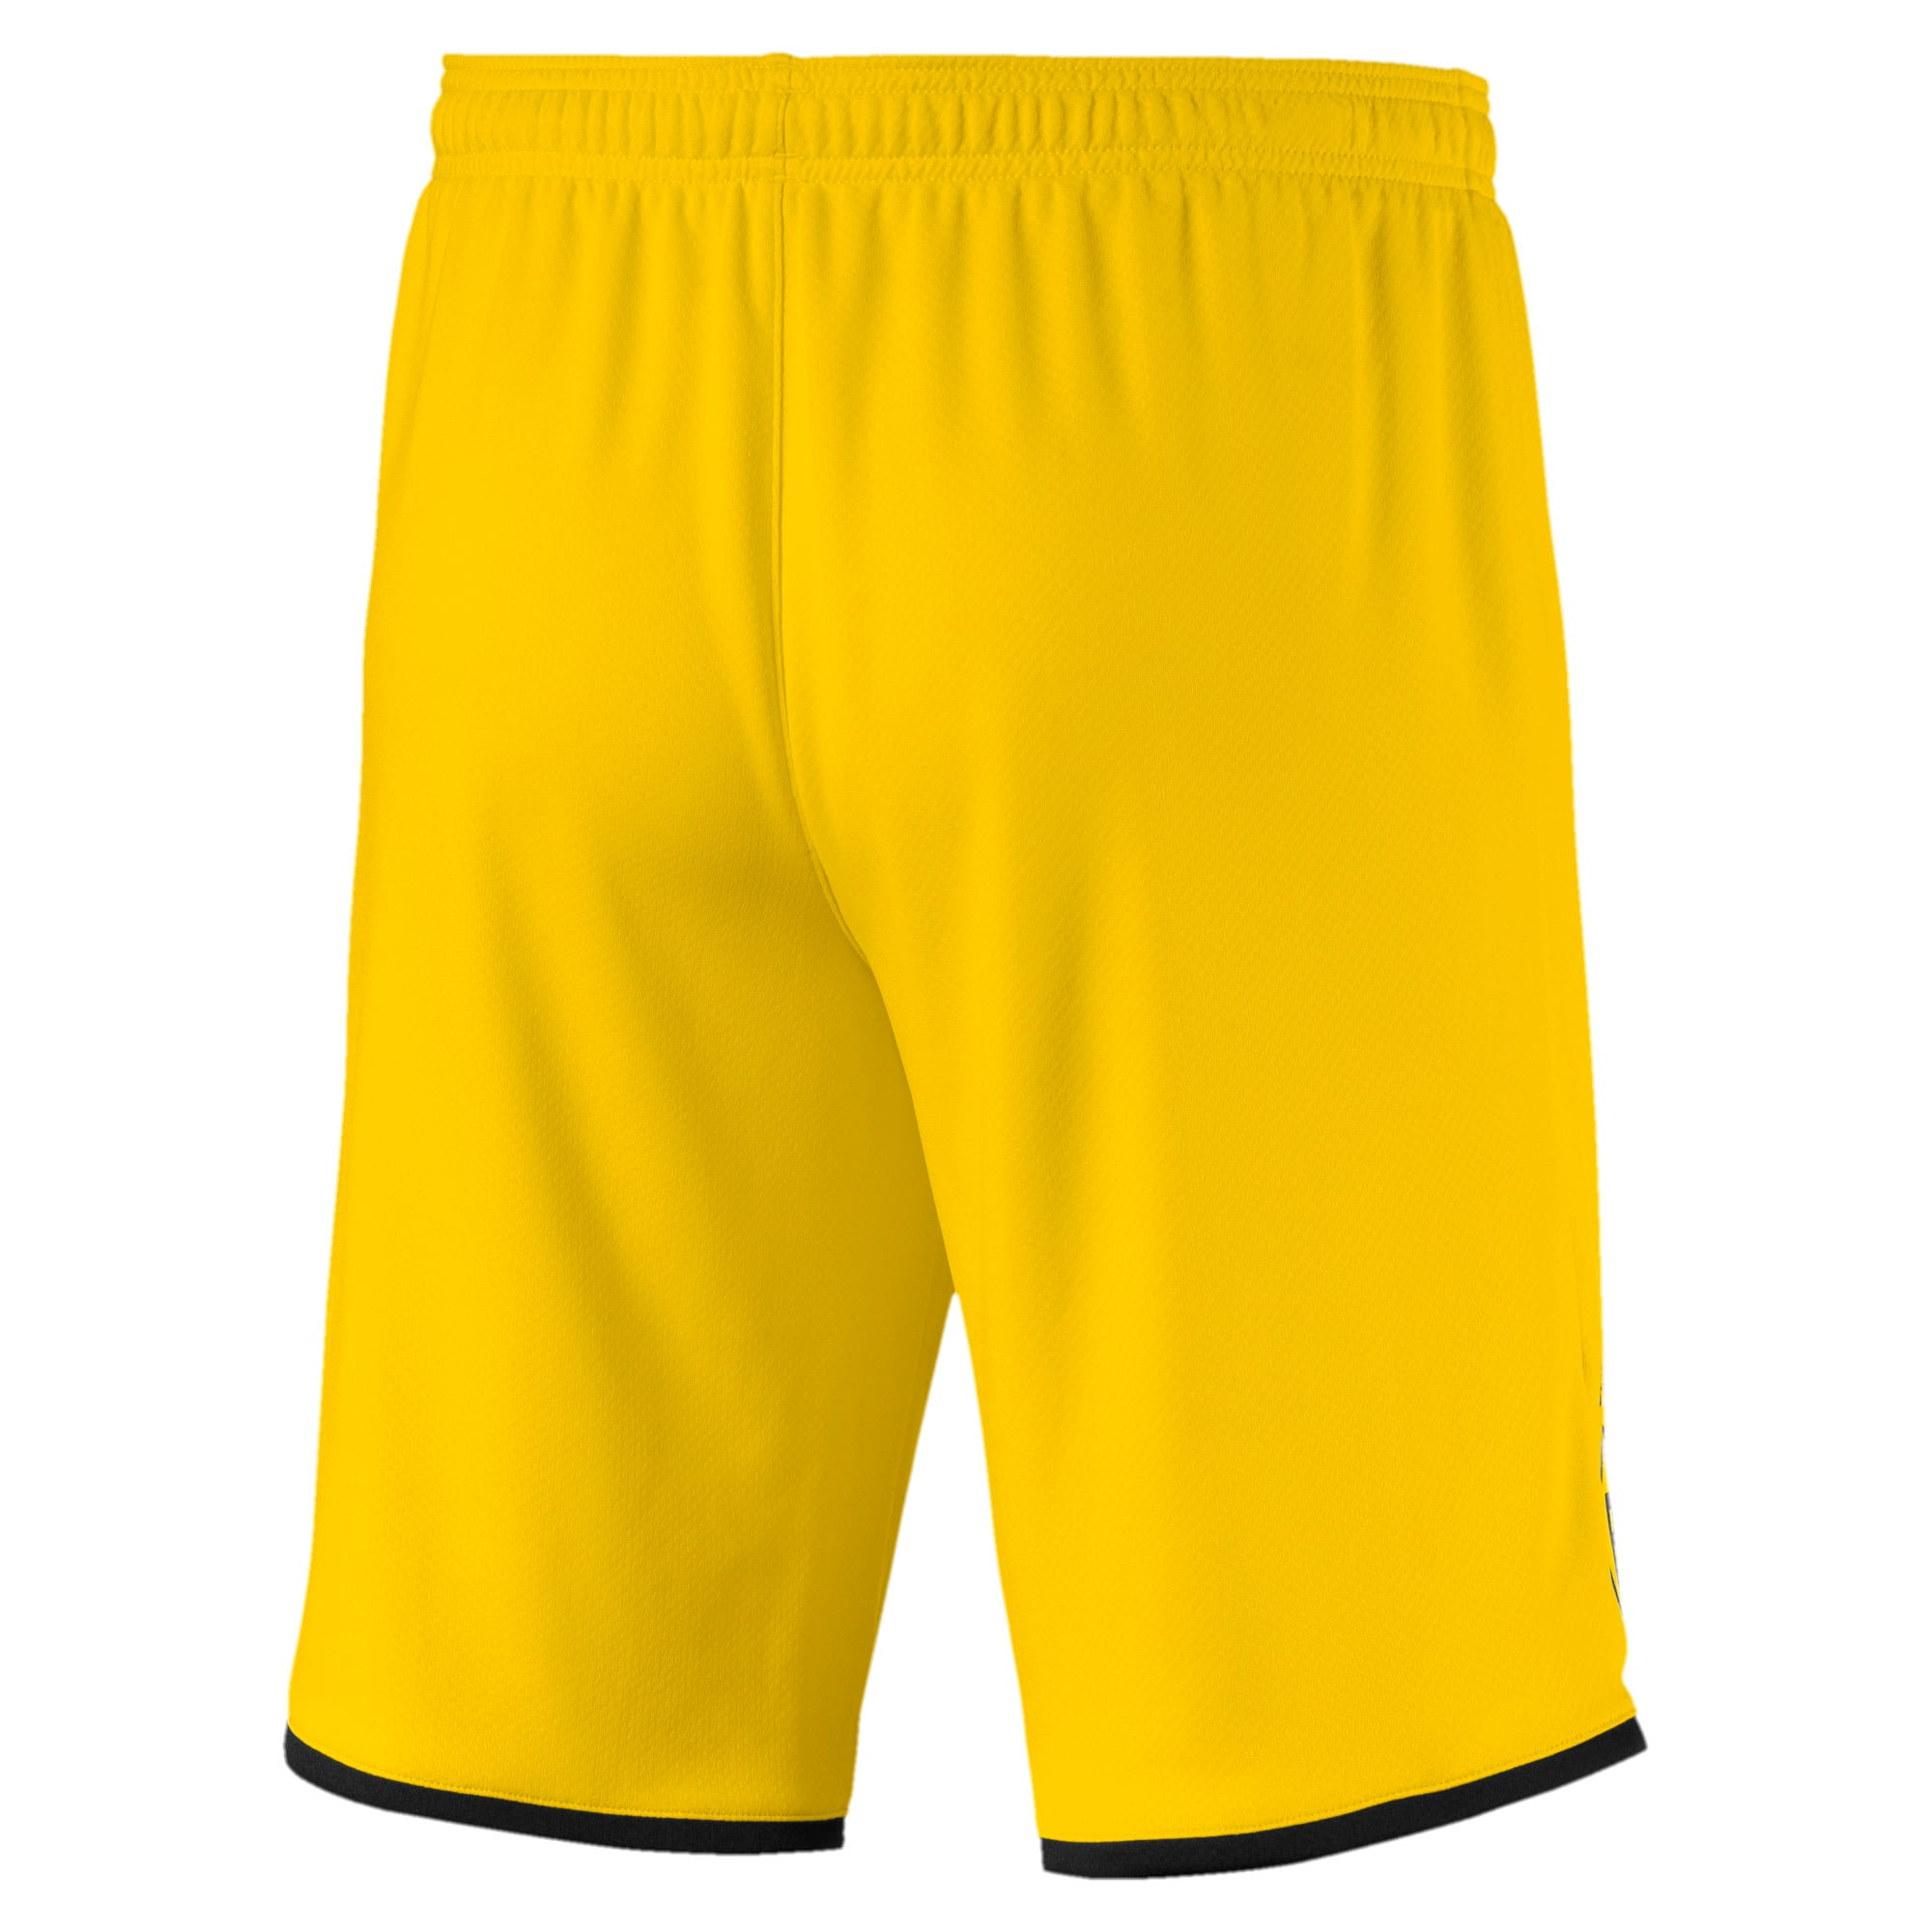 Thumbnail 2 of BVB Men's Away Replica Shorts, Cyber Yellow-Puma Black, medium